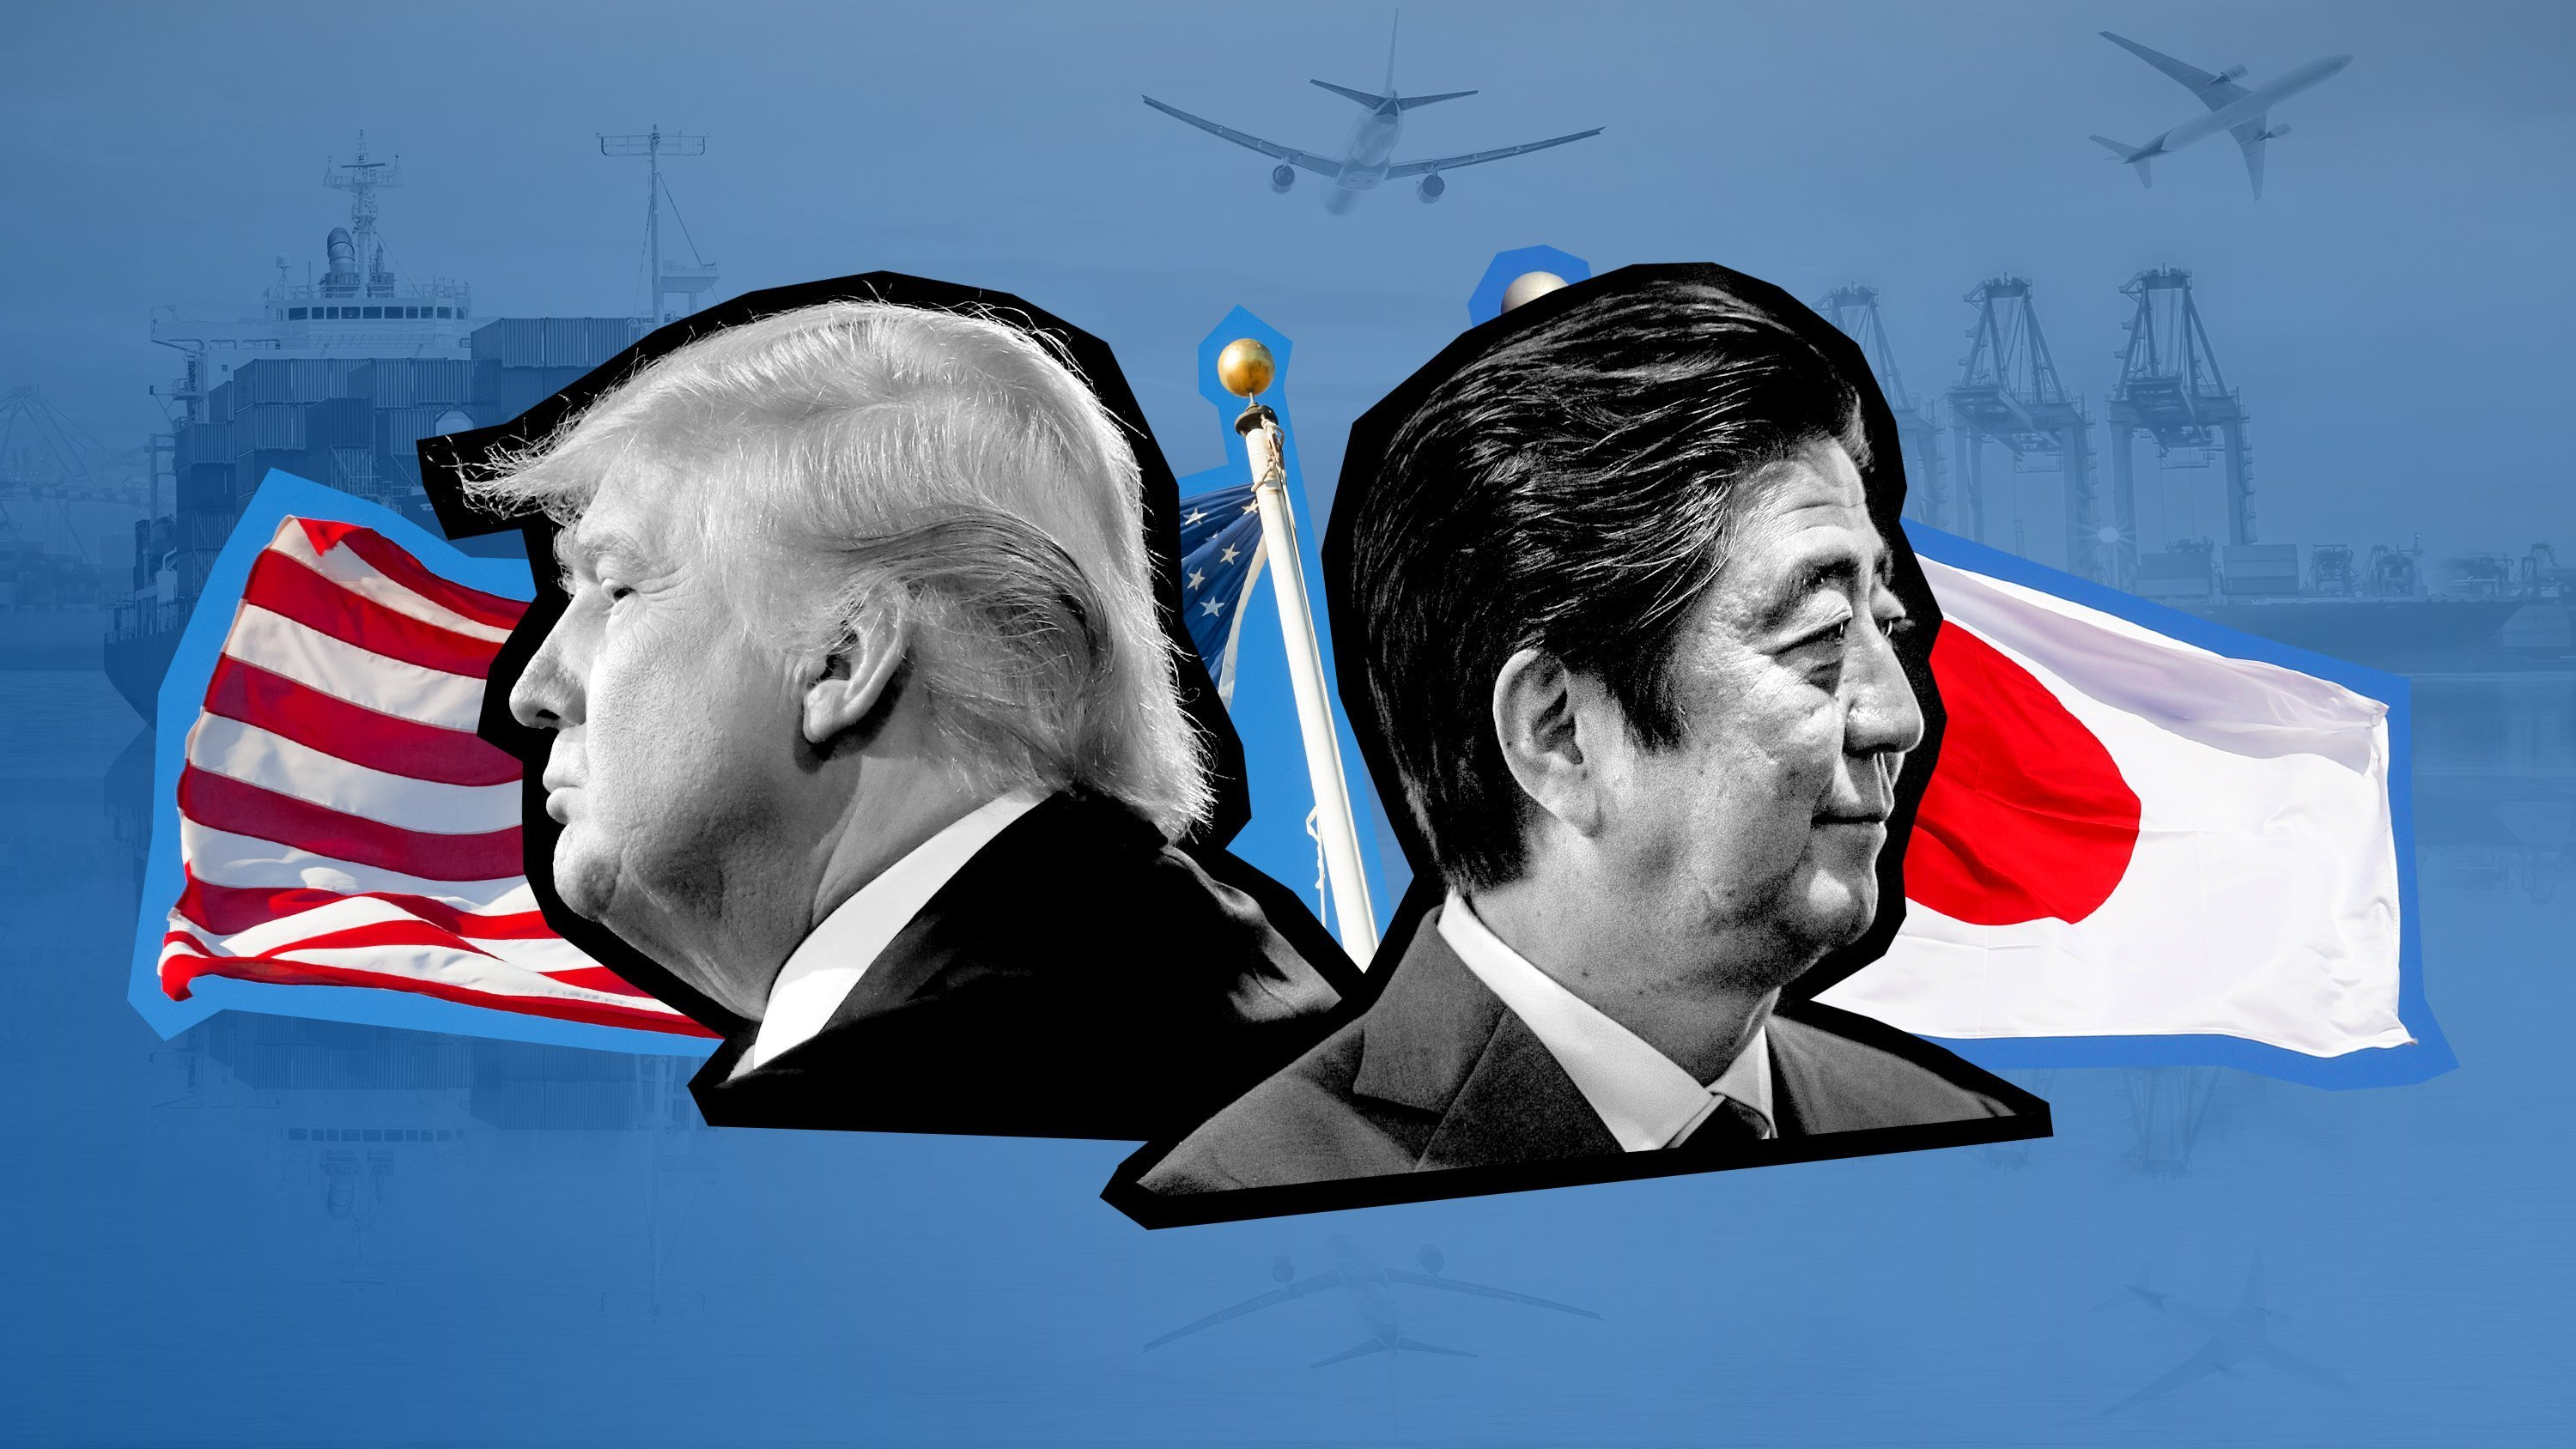 WENY News - Japan is heading for a trade showdown with America